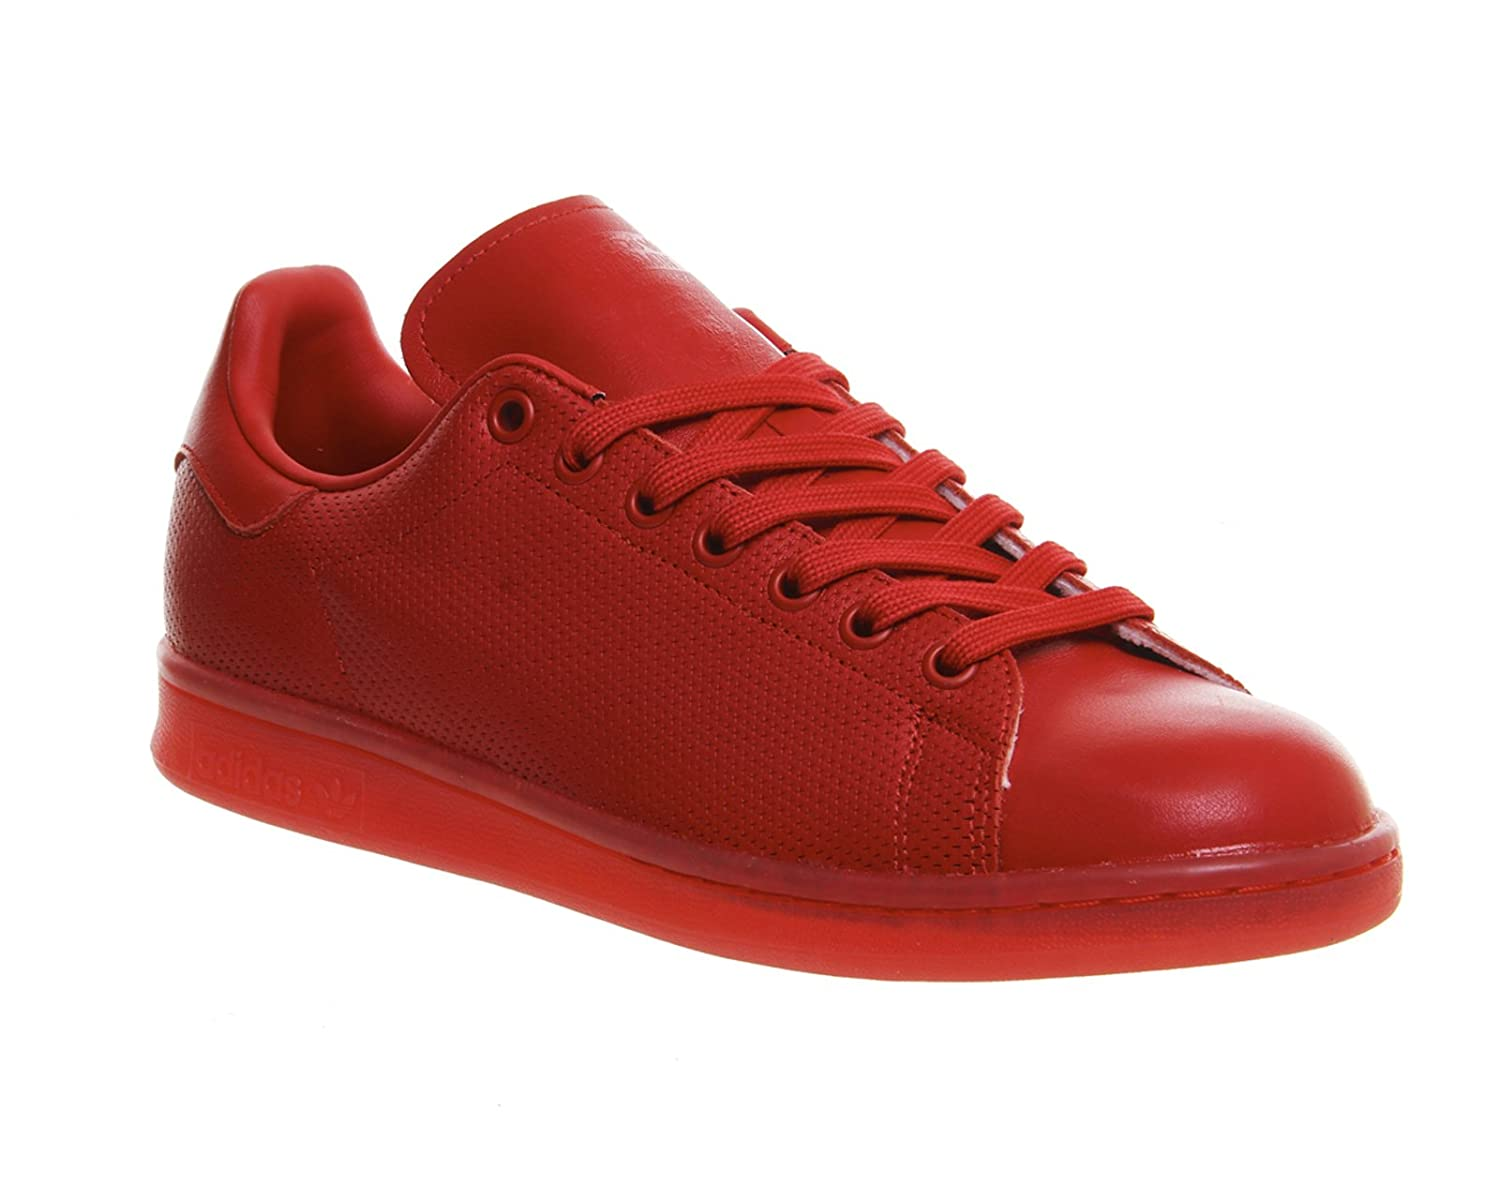 Adidas Turnschuhe Stan Smith AdiFarbe S80248 Rot Schuhgröße 39 1 3